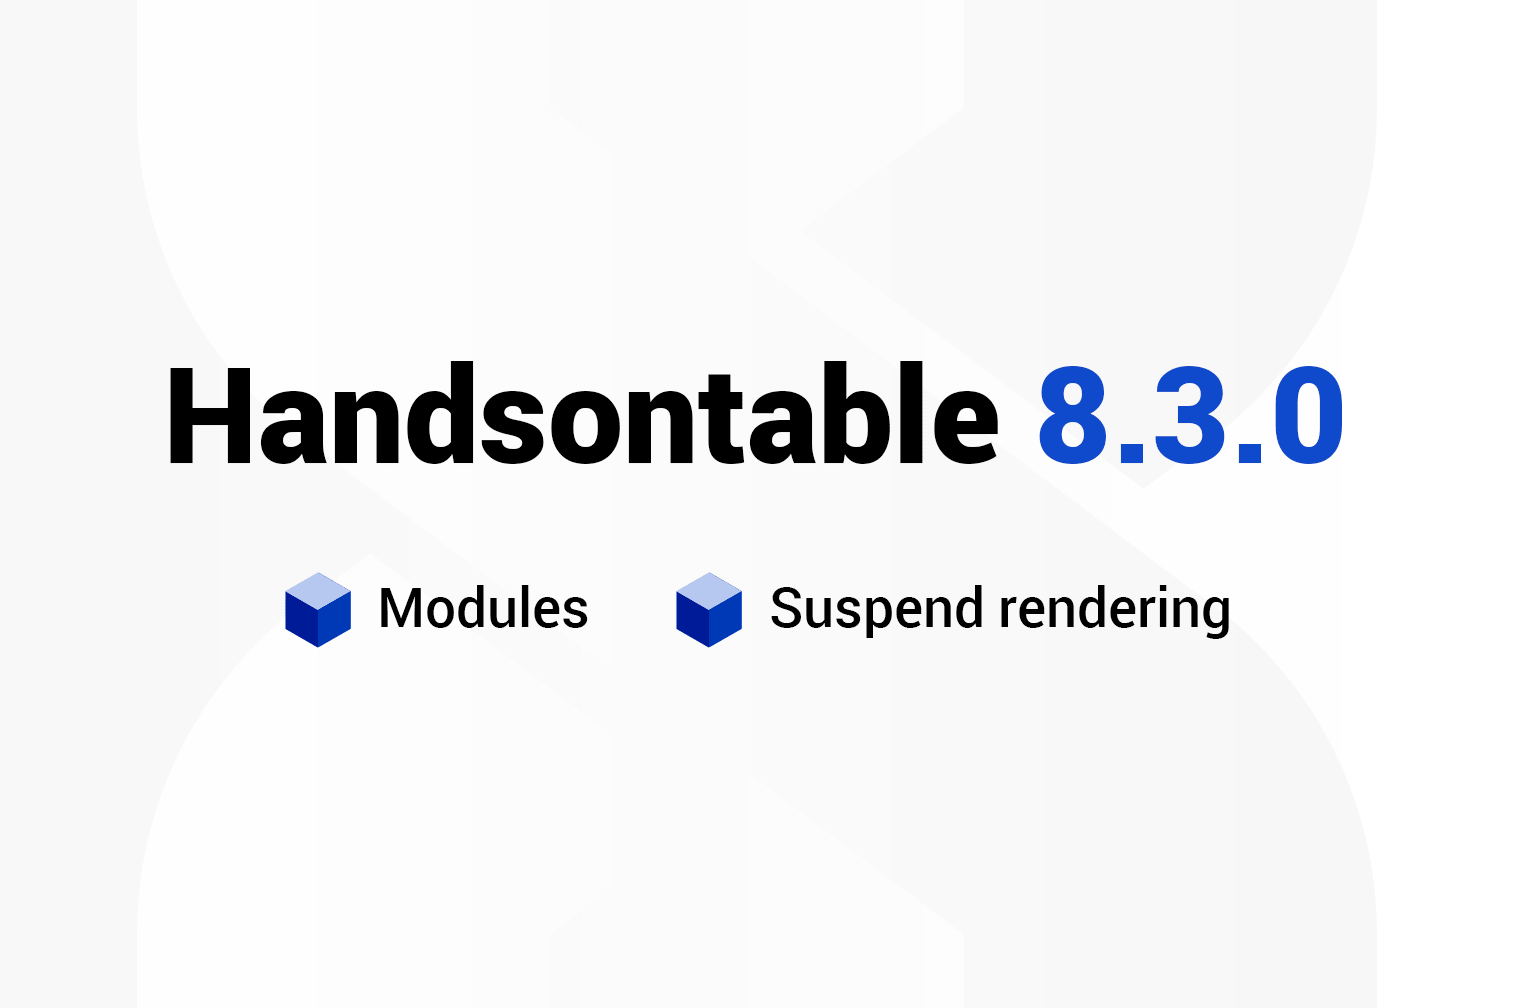 Handsontable 8.3.0 release